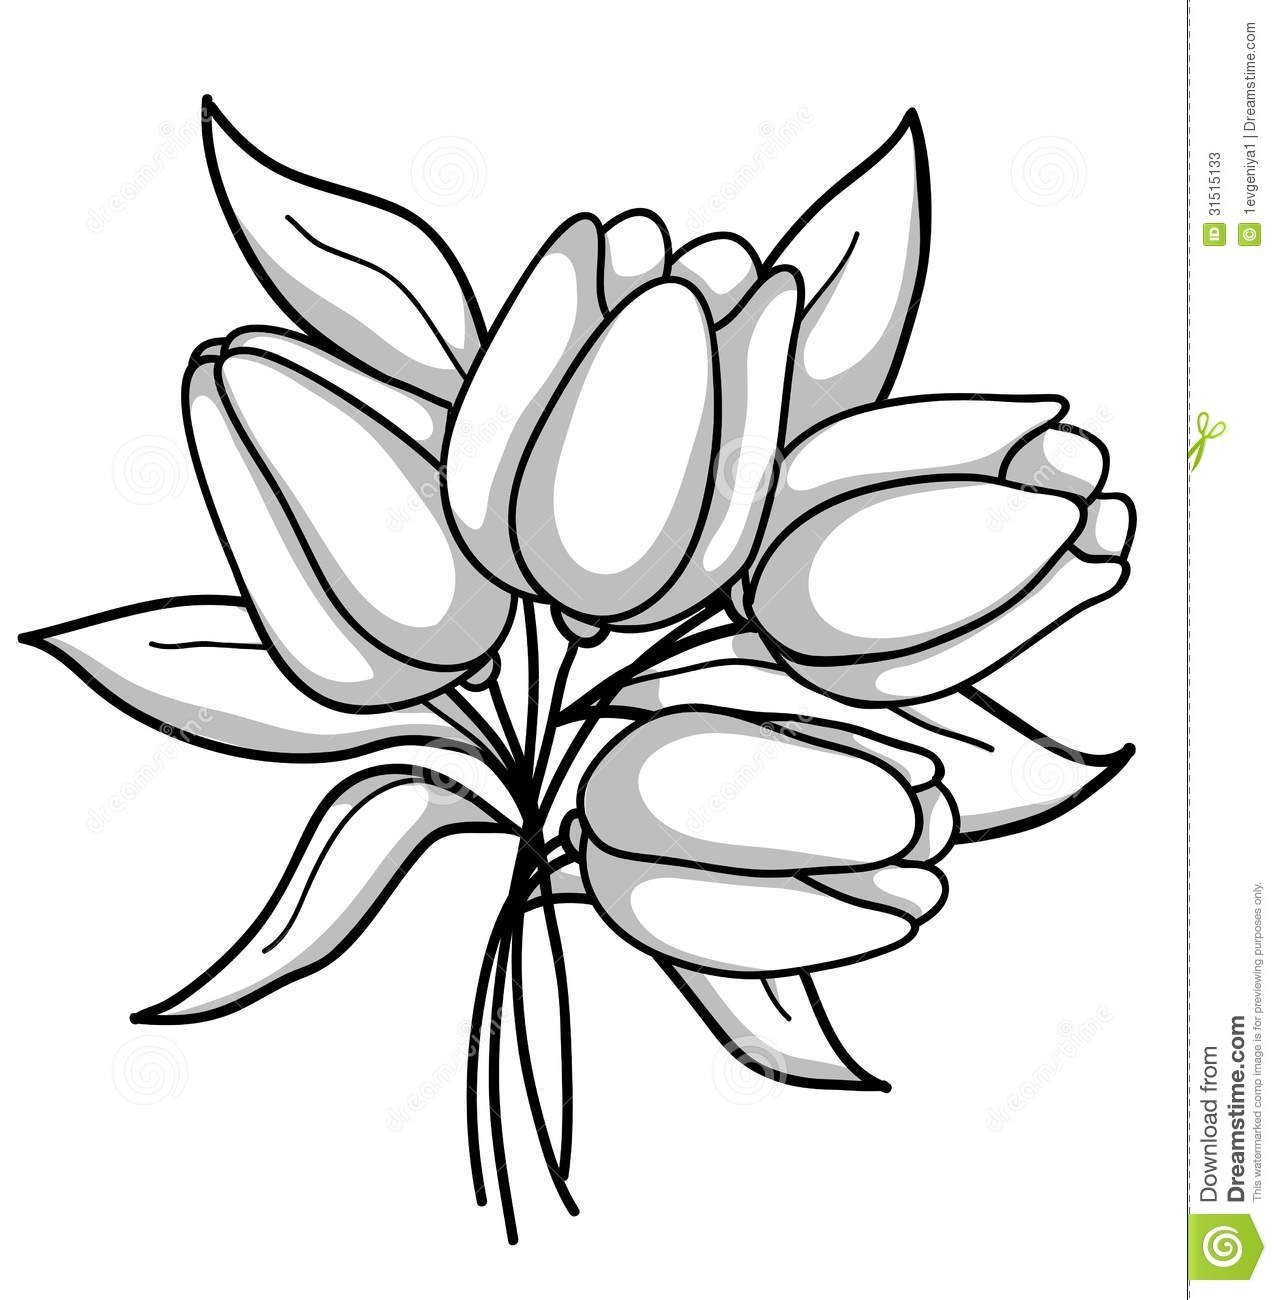 1277x1300 Flower Bouquet Clip Art Black And White